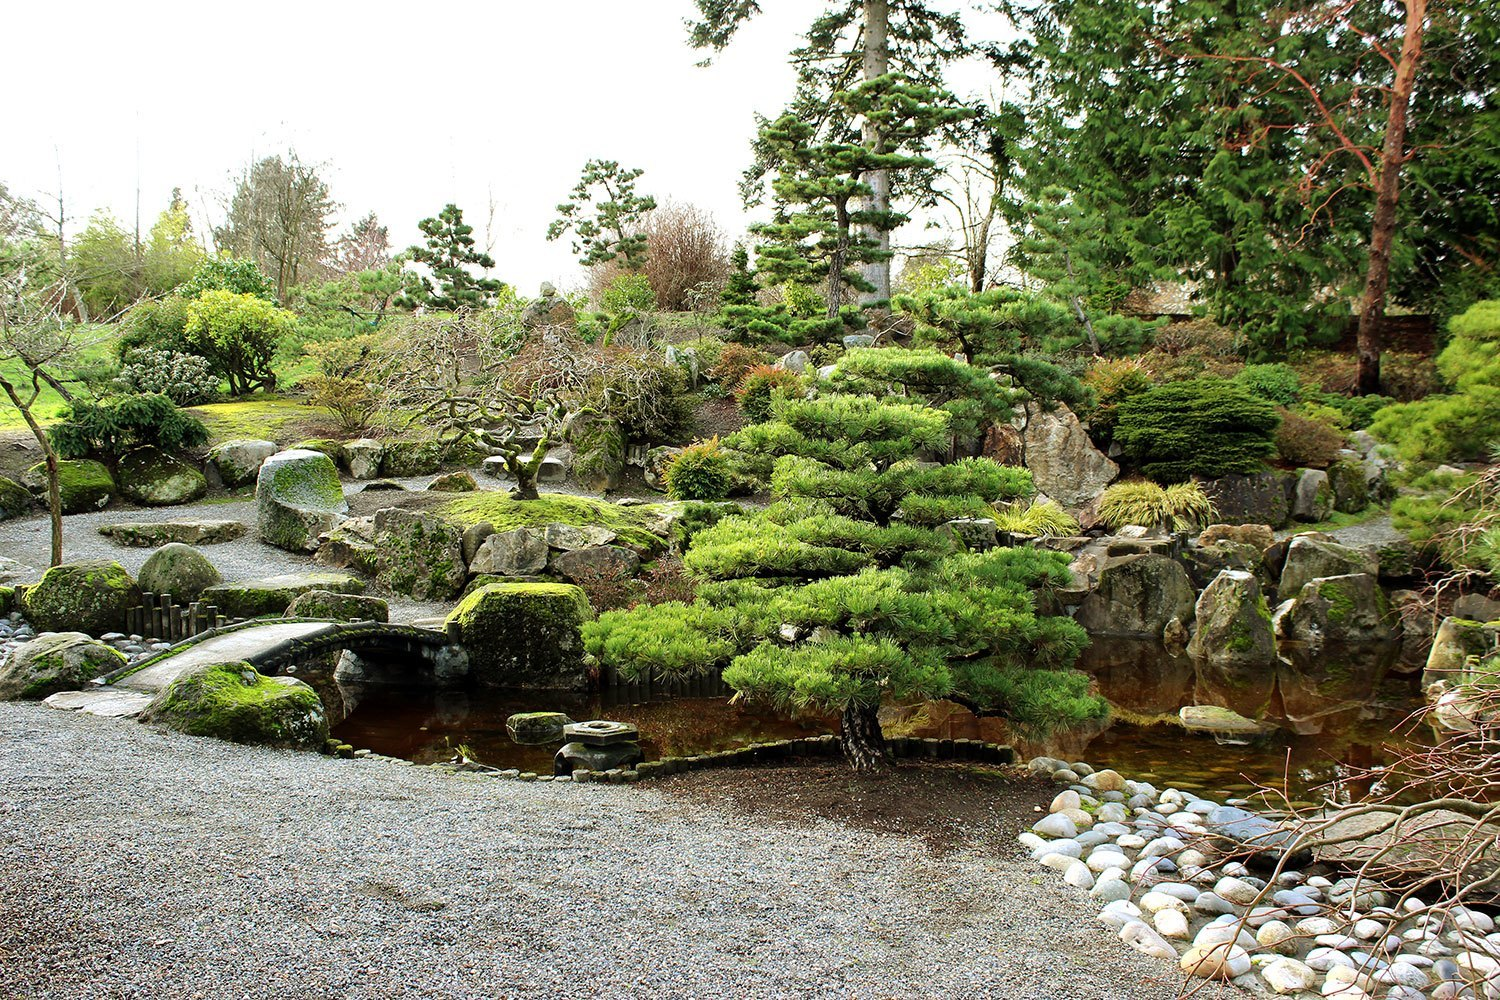 japanesegarden03 - Japanese Garden